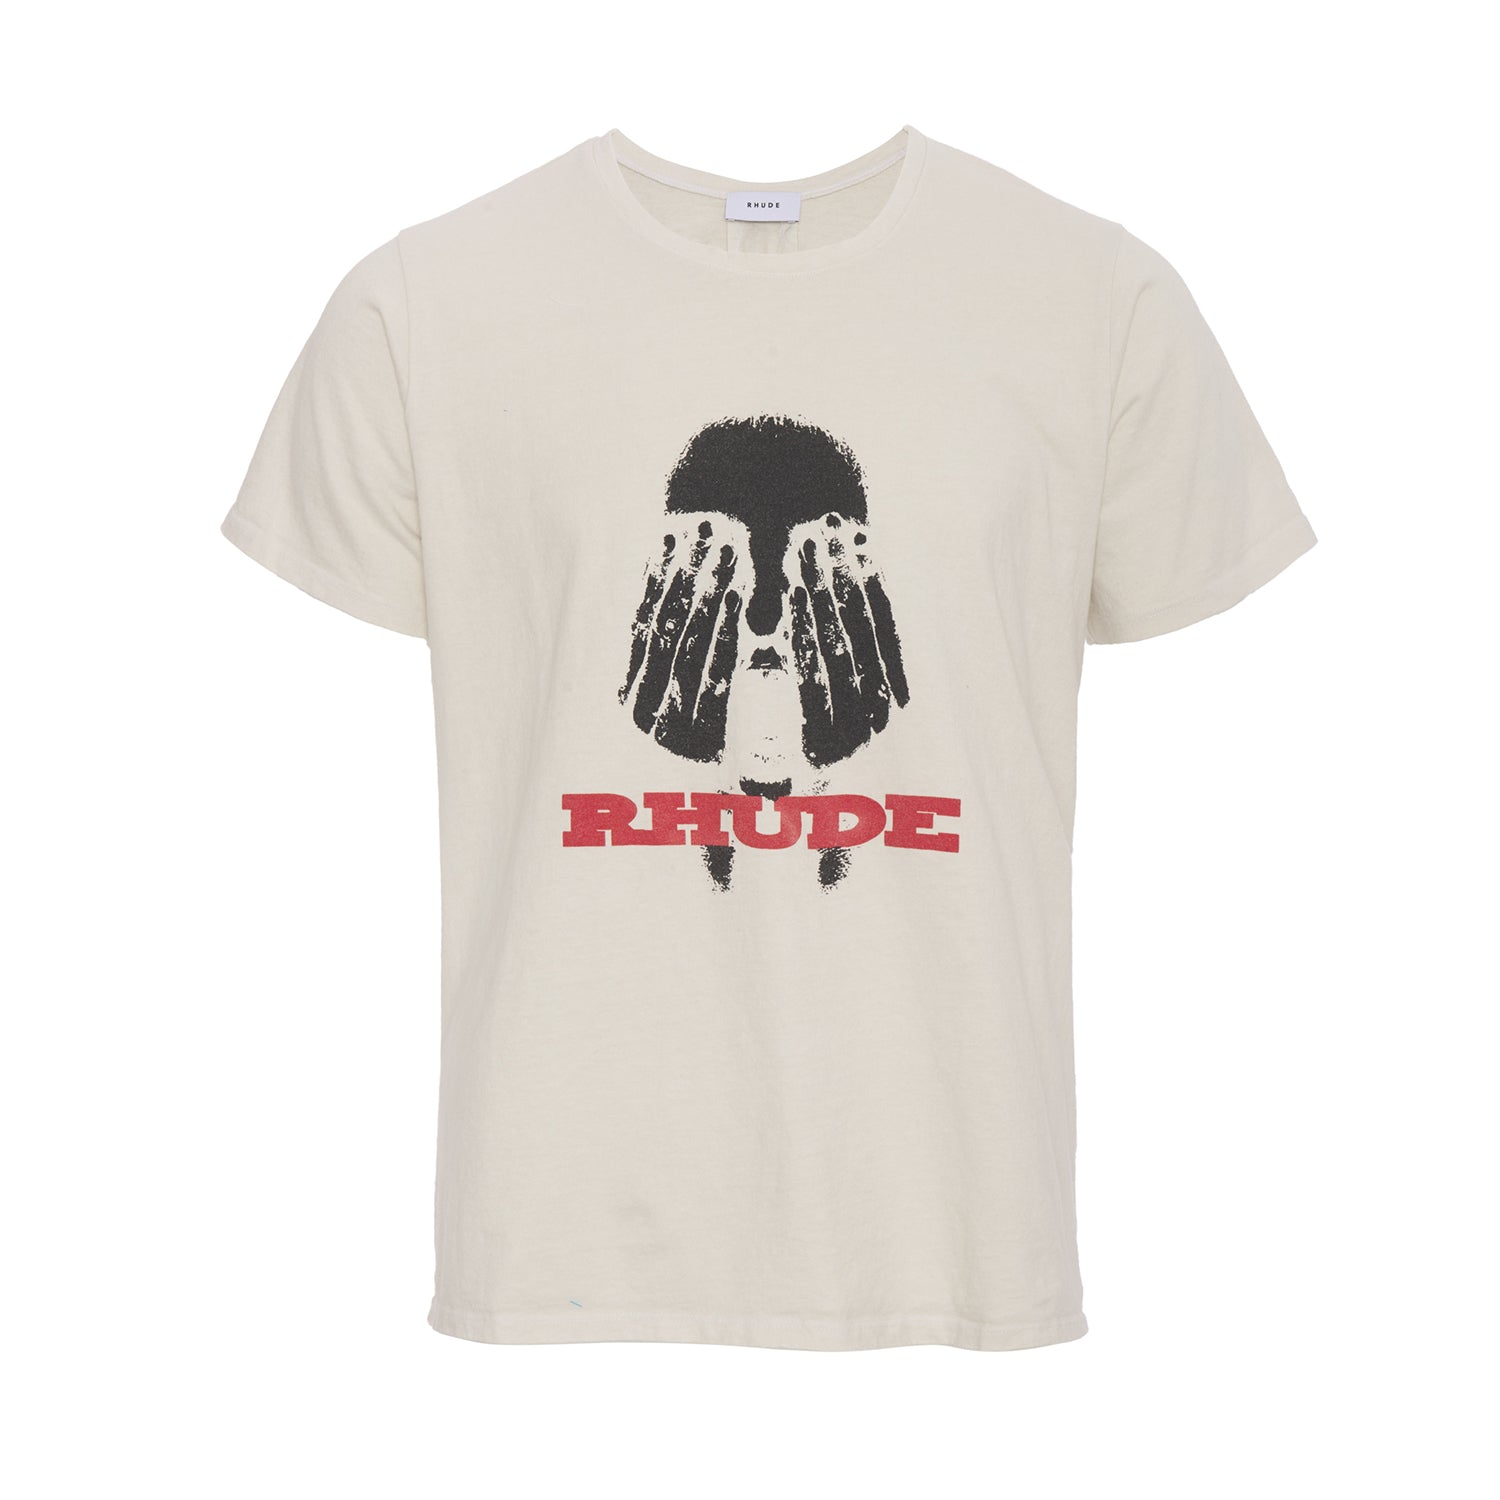 Hands On The Face Tee